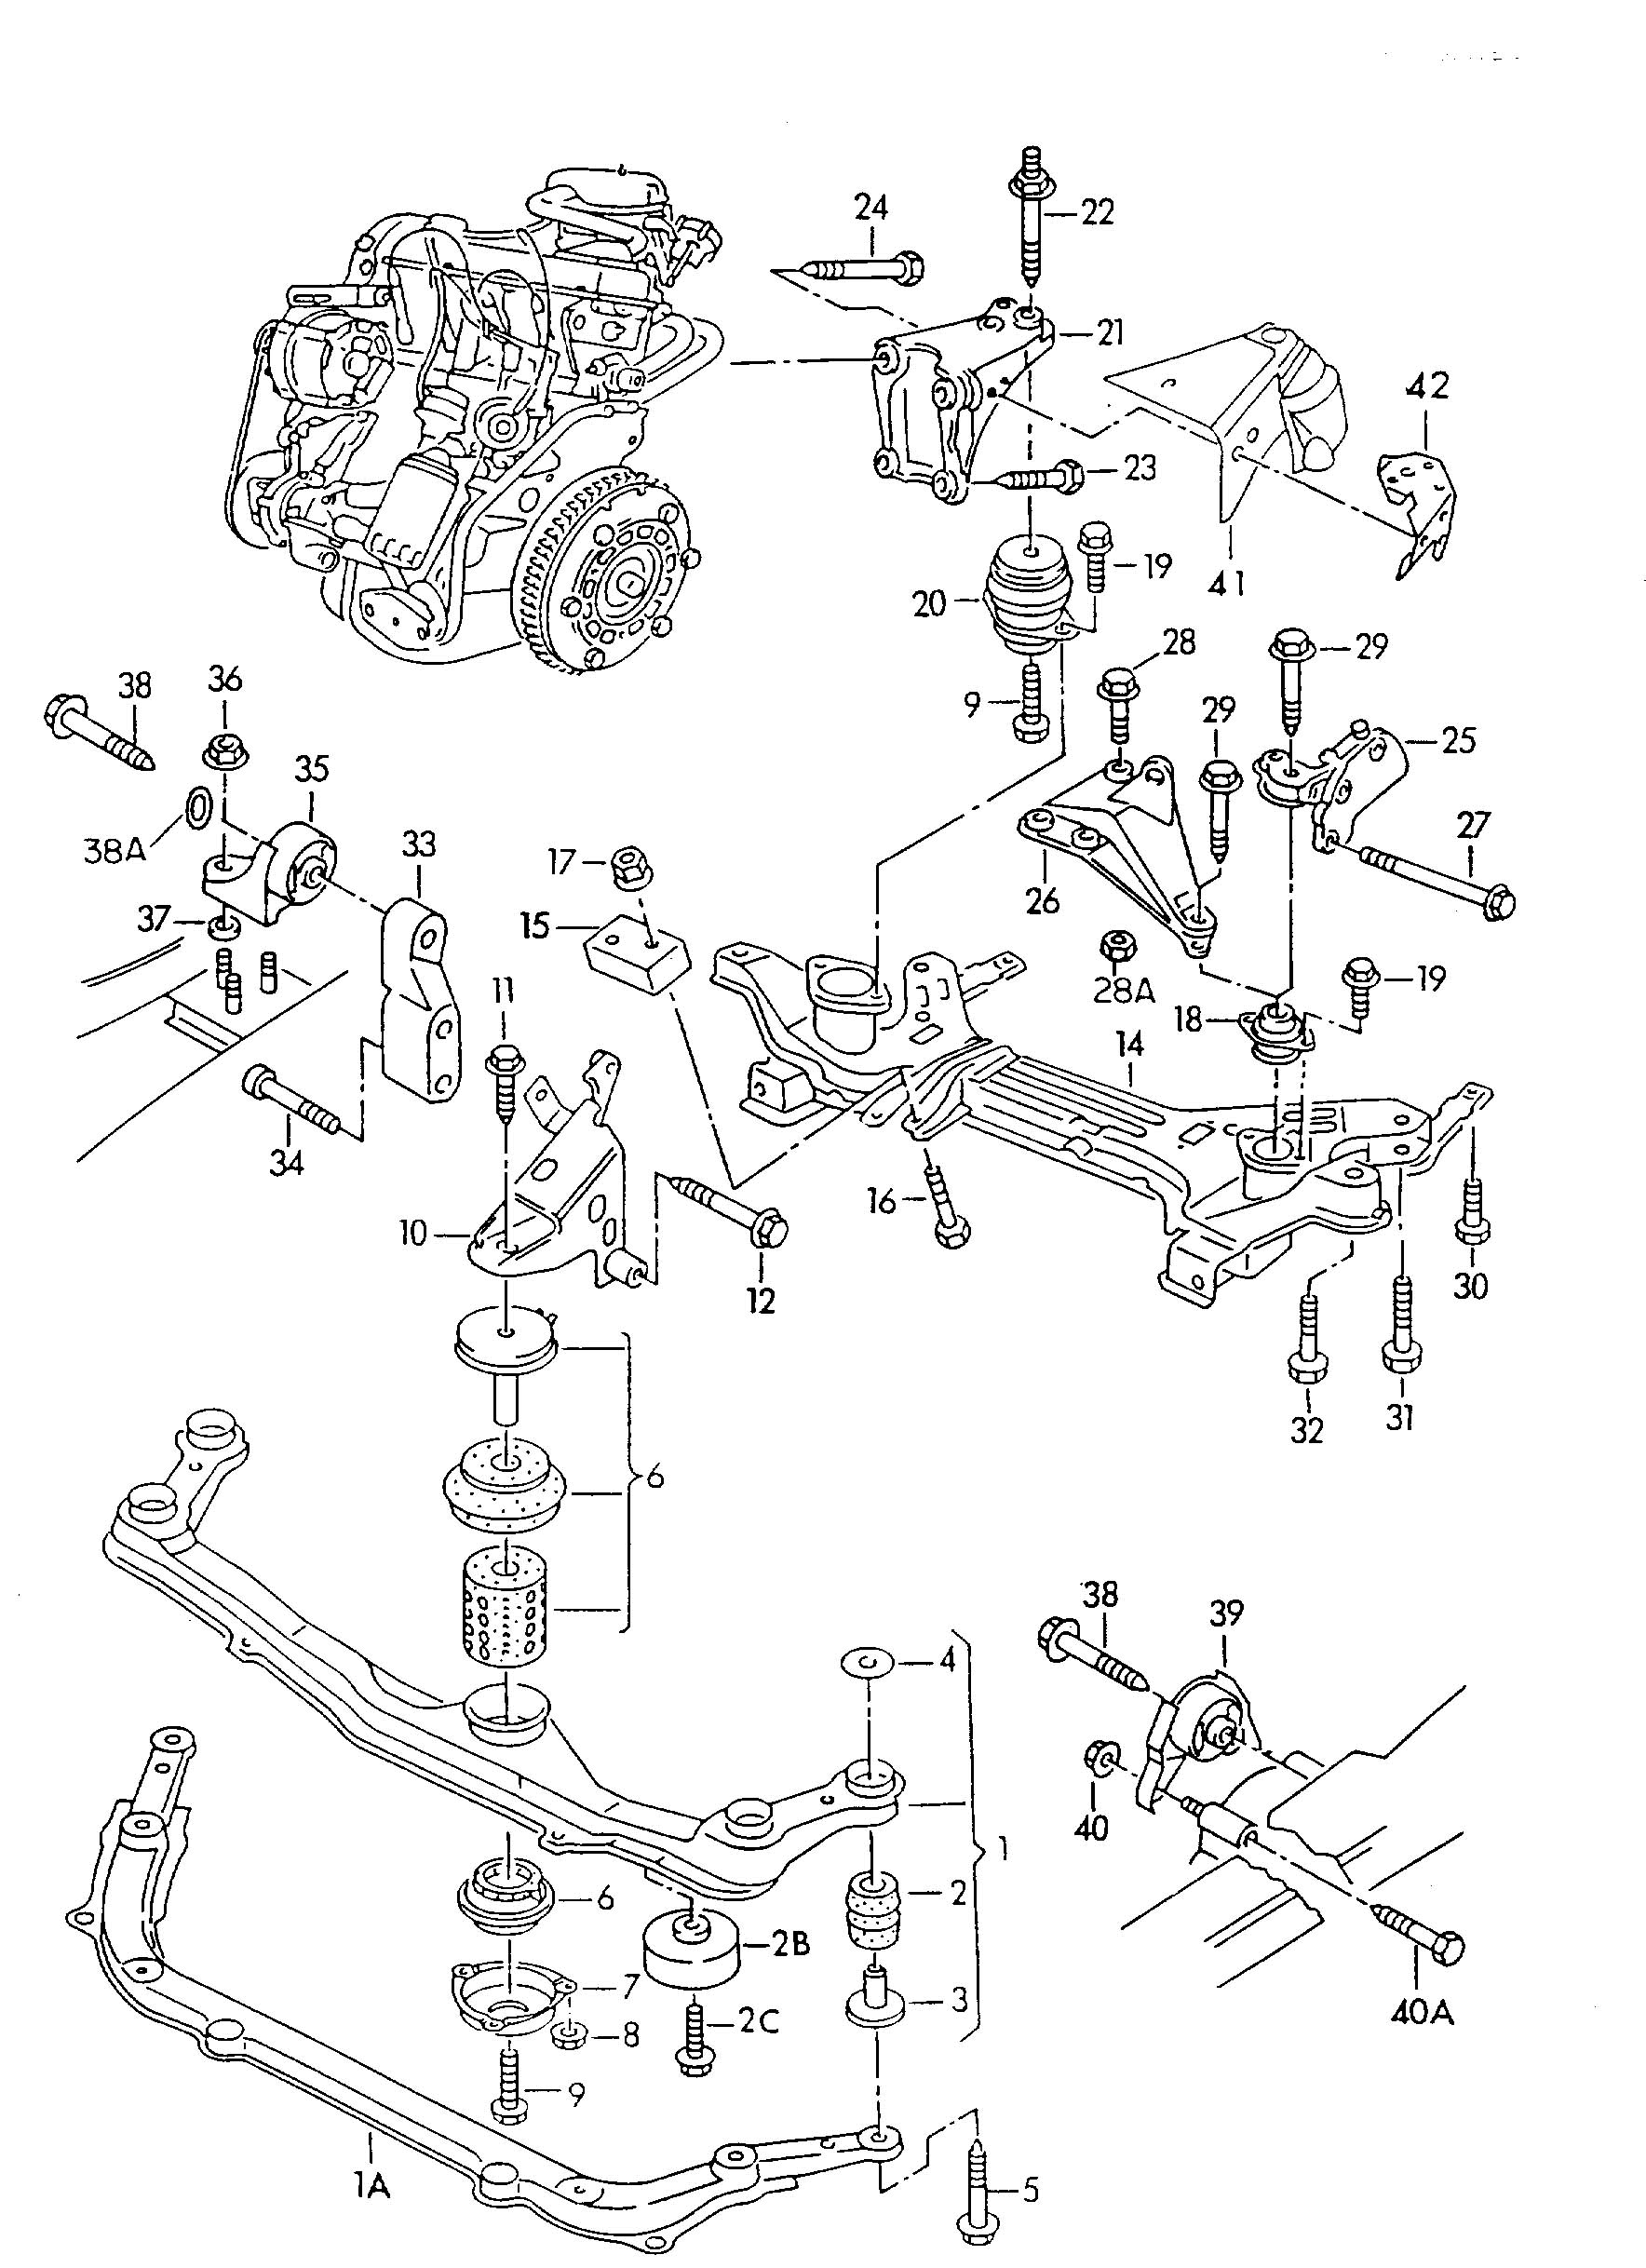 Vw Jetta Frame Diagram